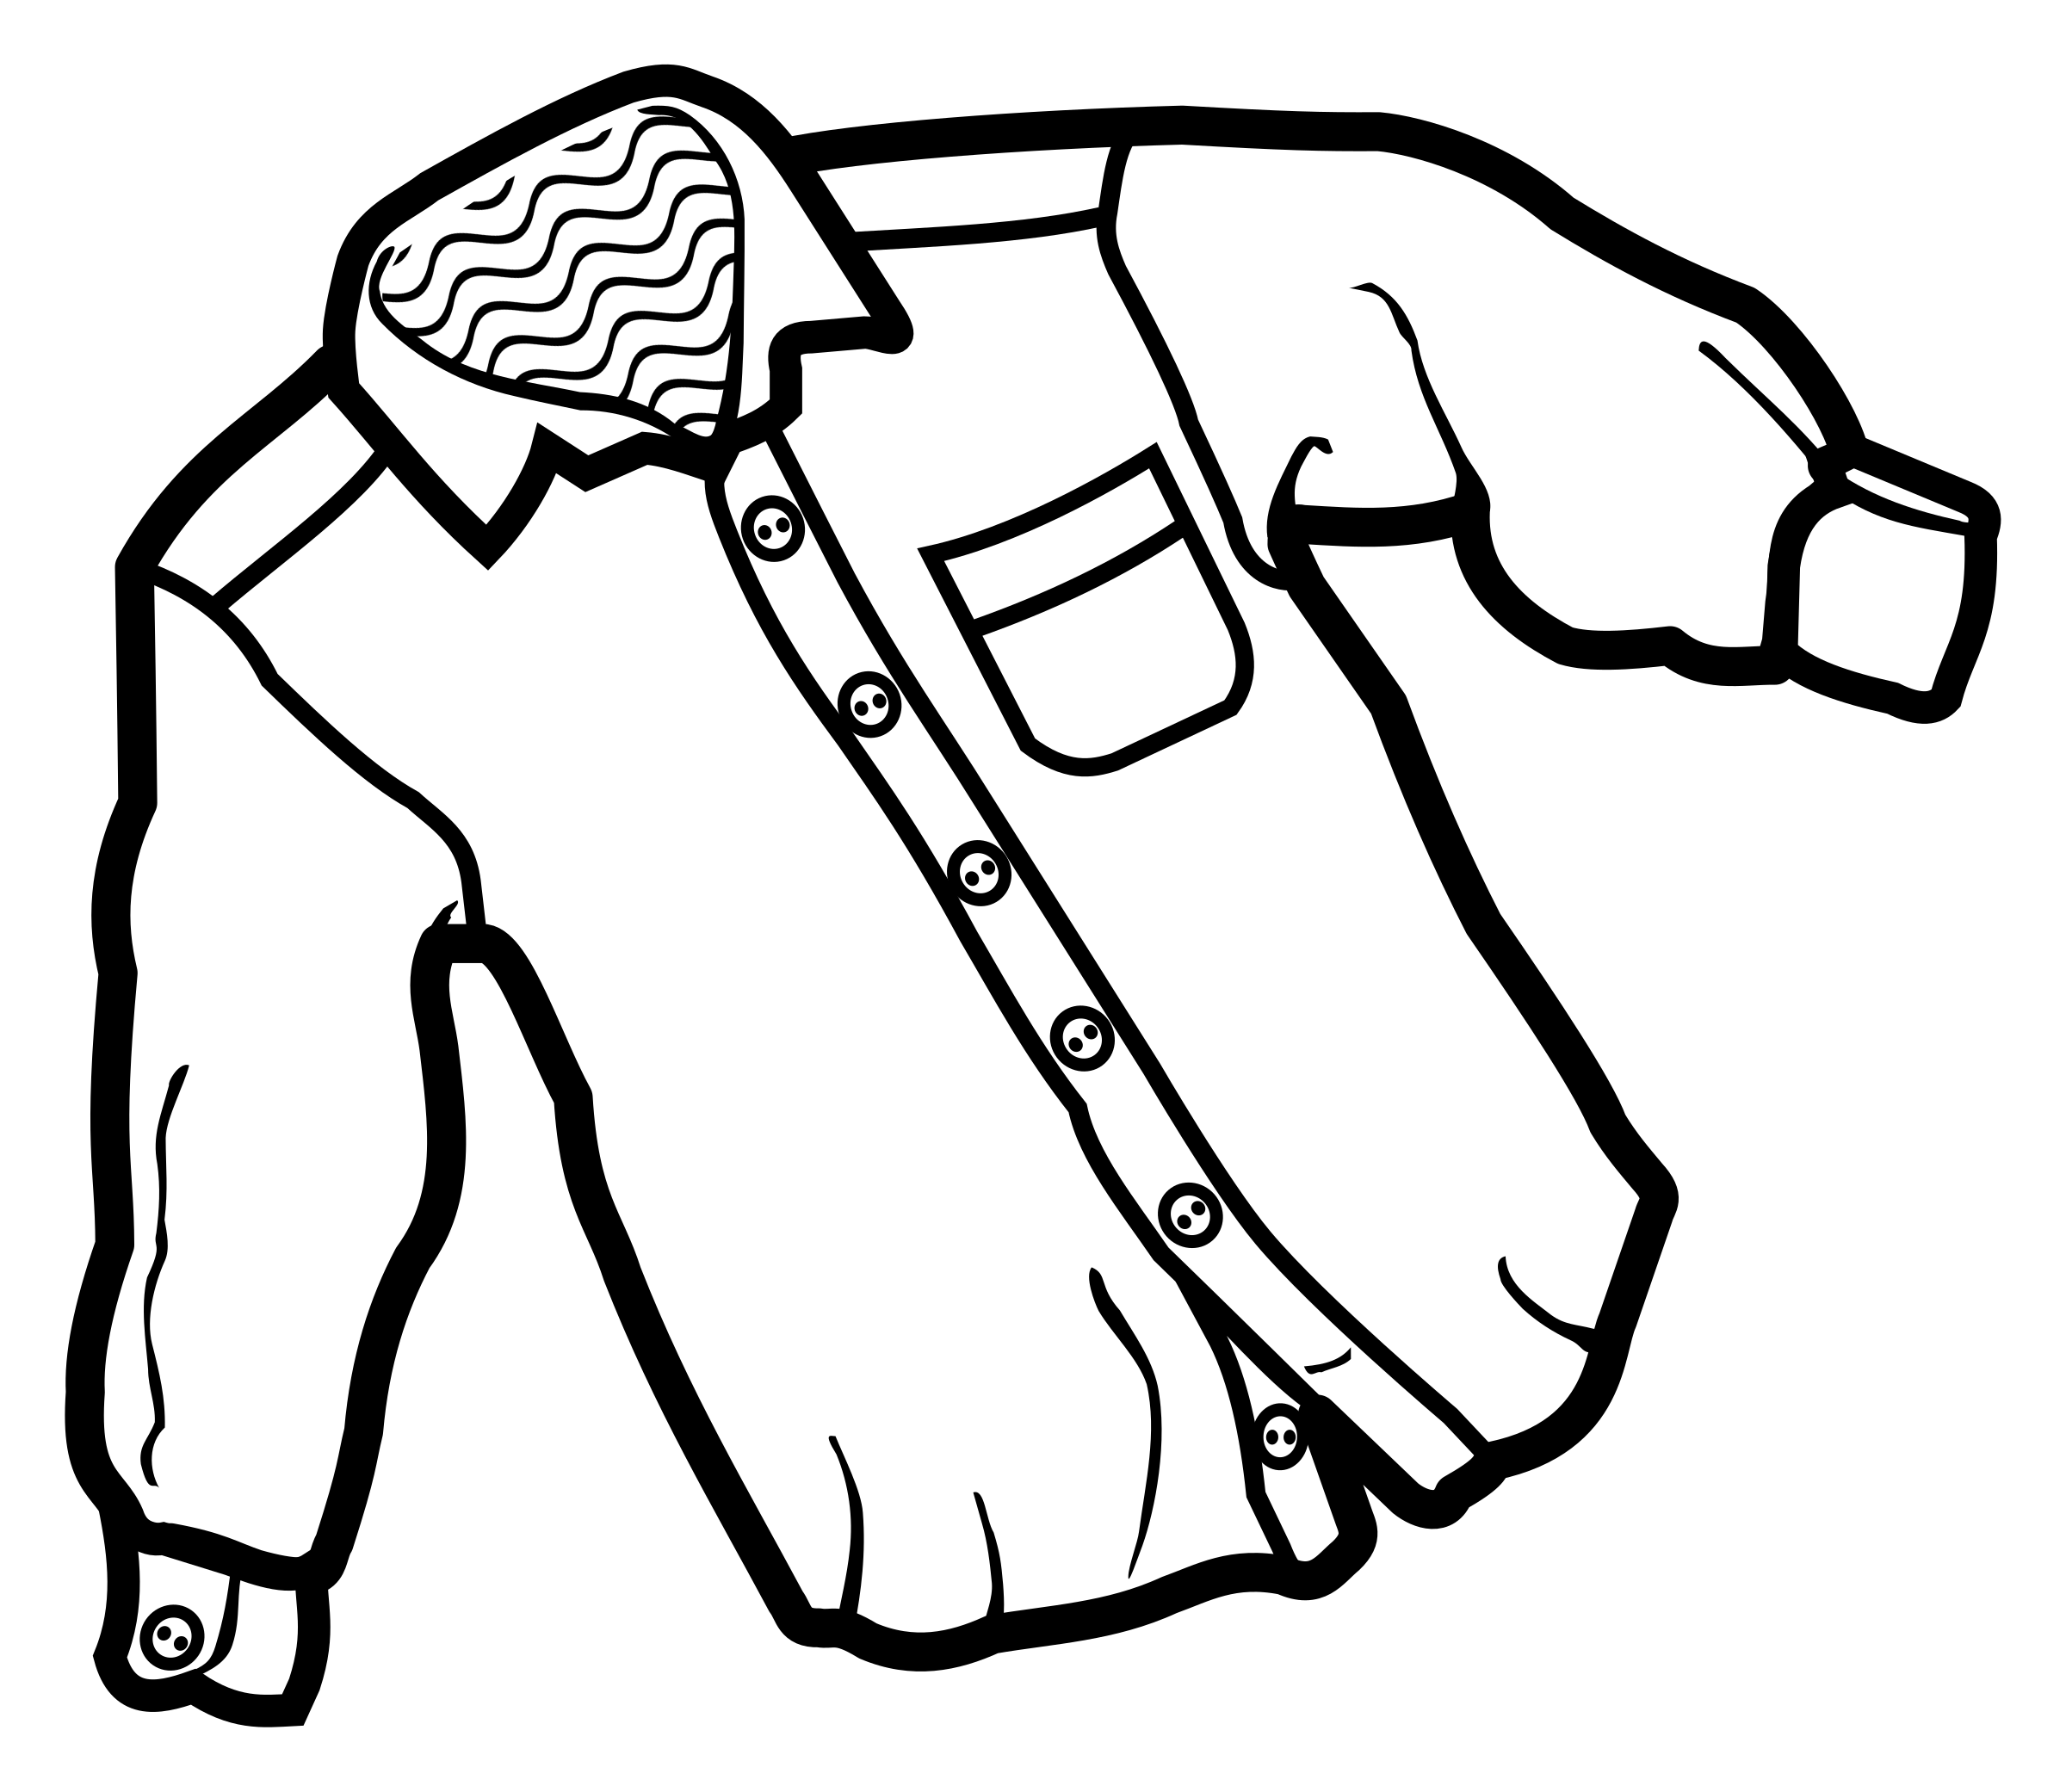 Shirt clipart shirt line. Lineart icons png free